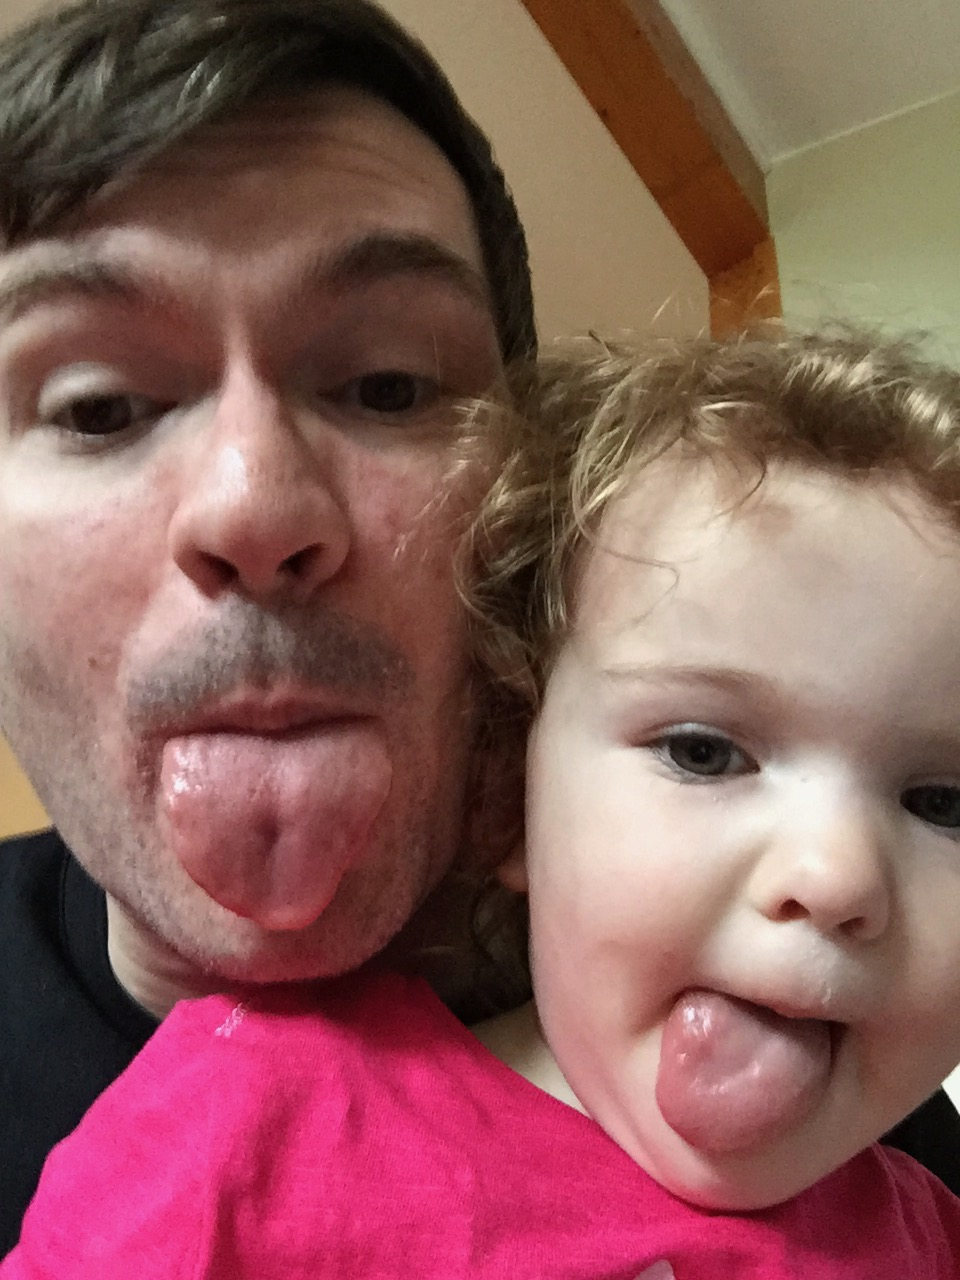 An image of a chid and her father sticking out their tongues.